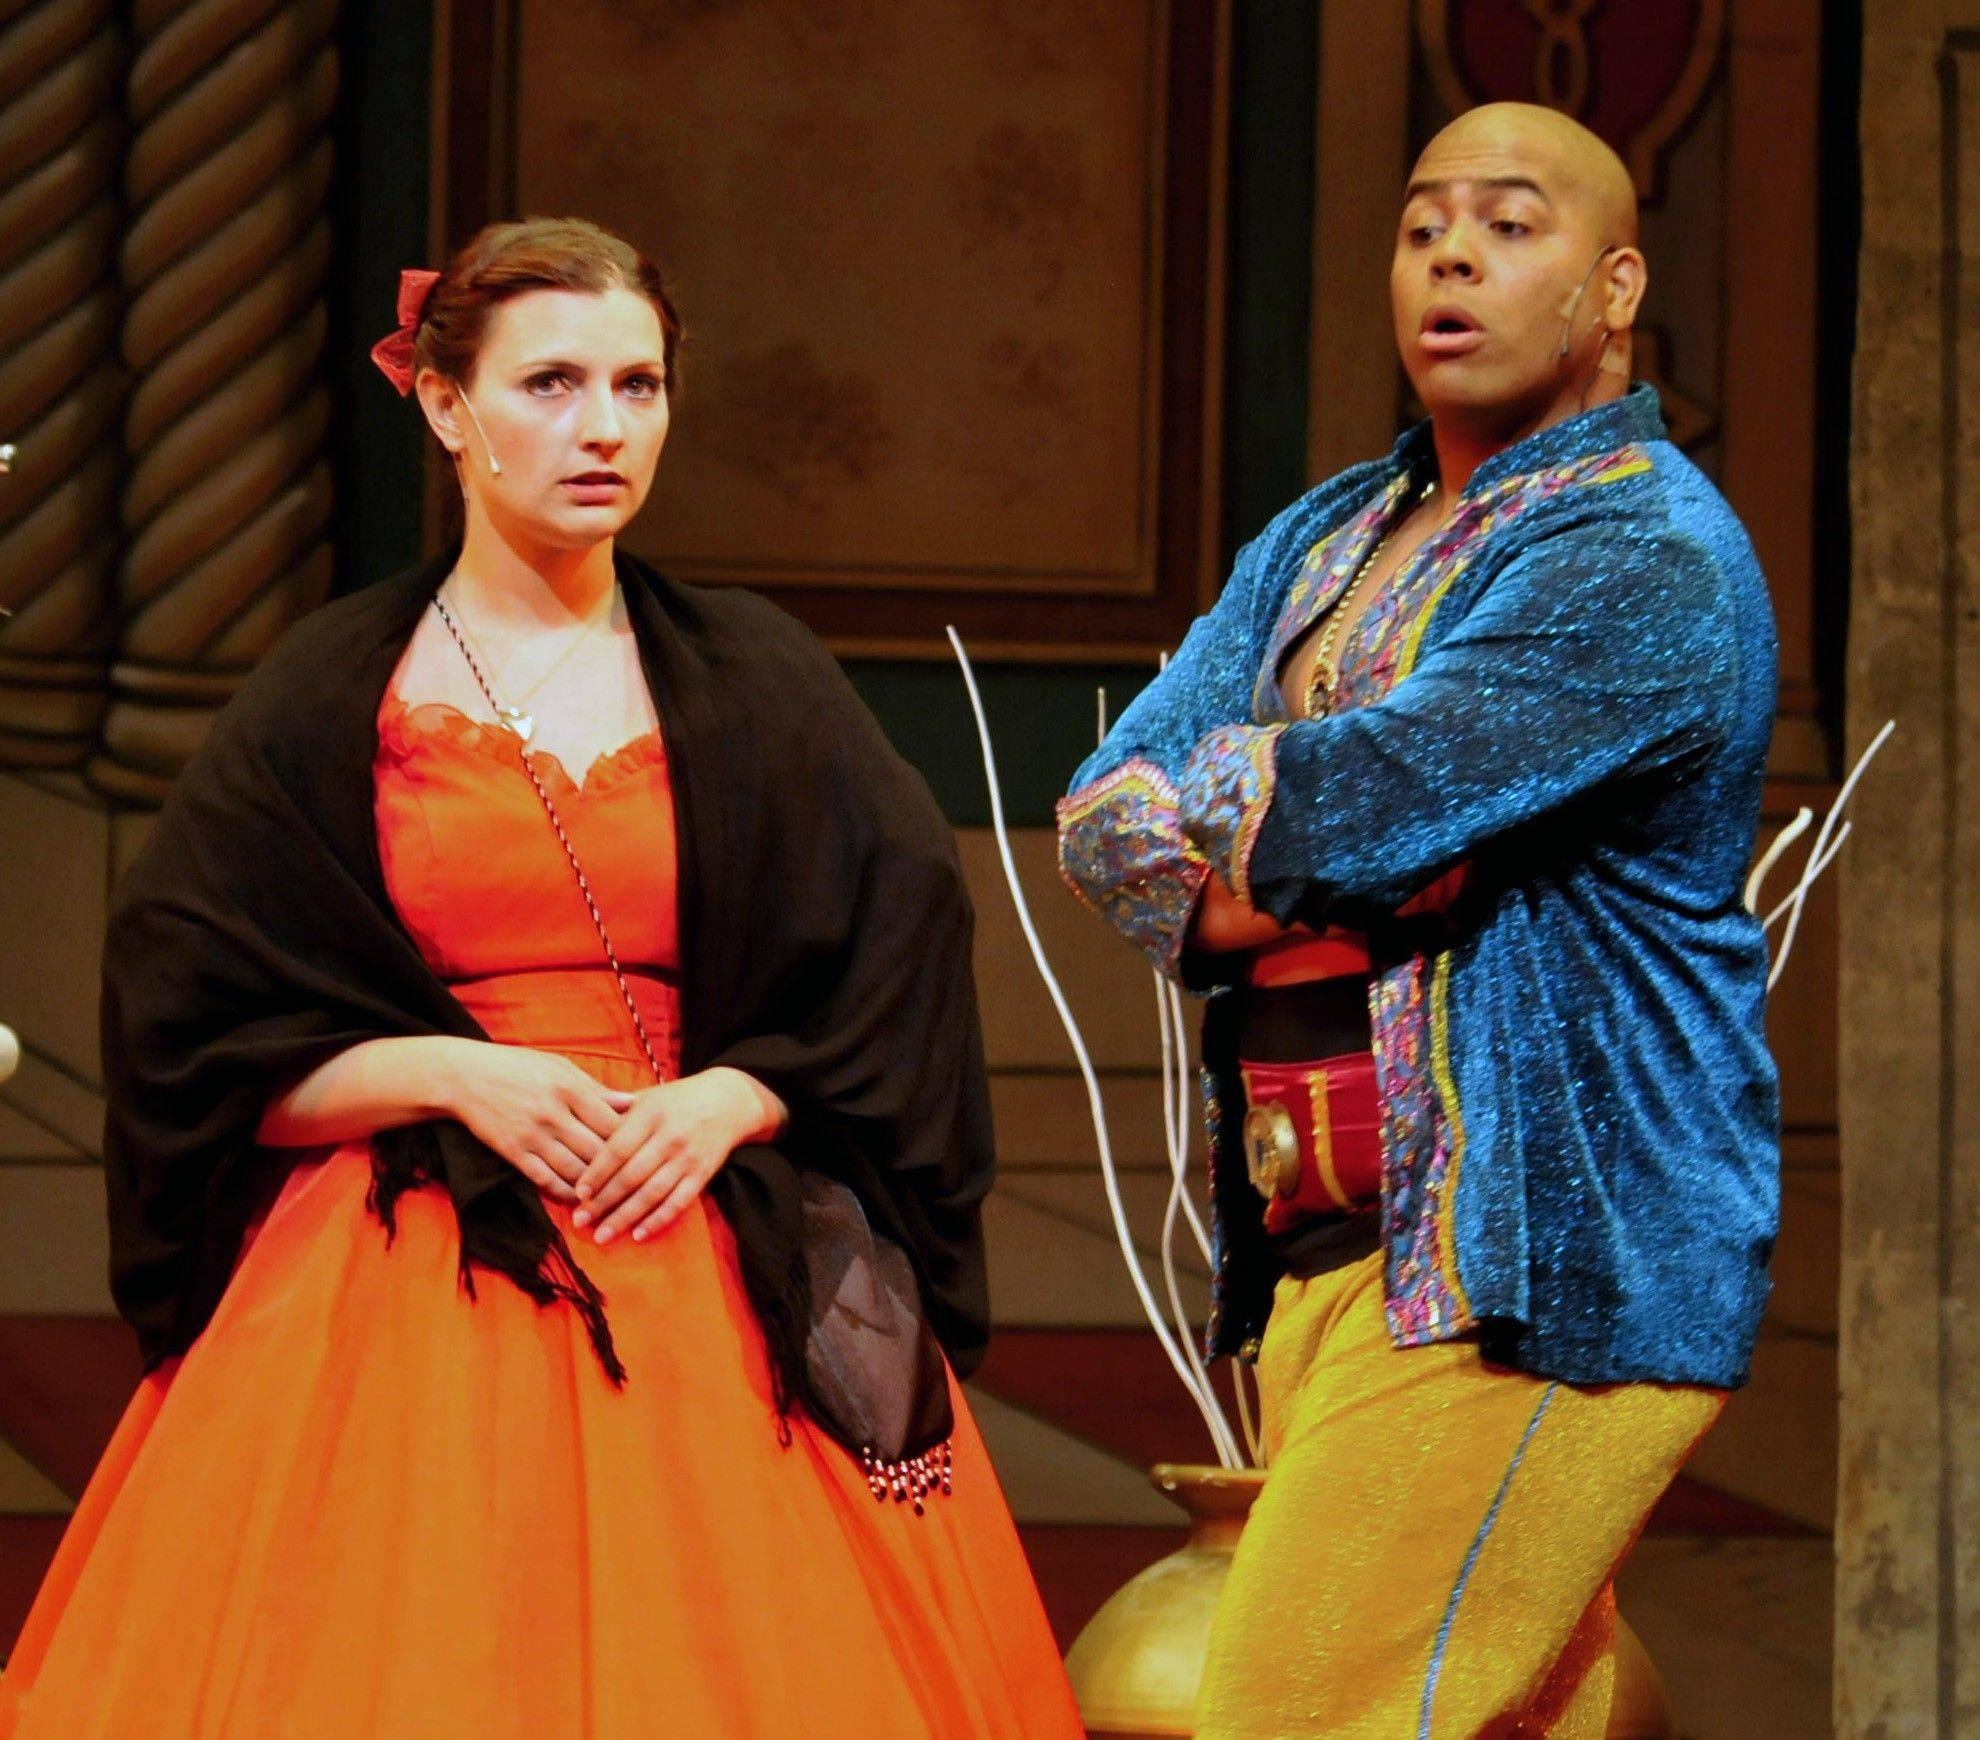 Stephanie Leo and Joe Rigaud, who played the lead roles in the Park District�s recent rendition of �The King and I,� will have a prominent presence in next Saturday�s dinner-theater celebration of Andrew Lloyd Webber�s music.